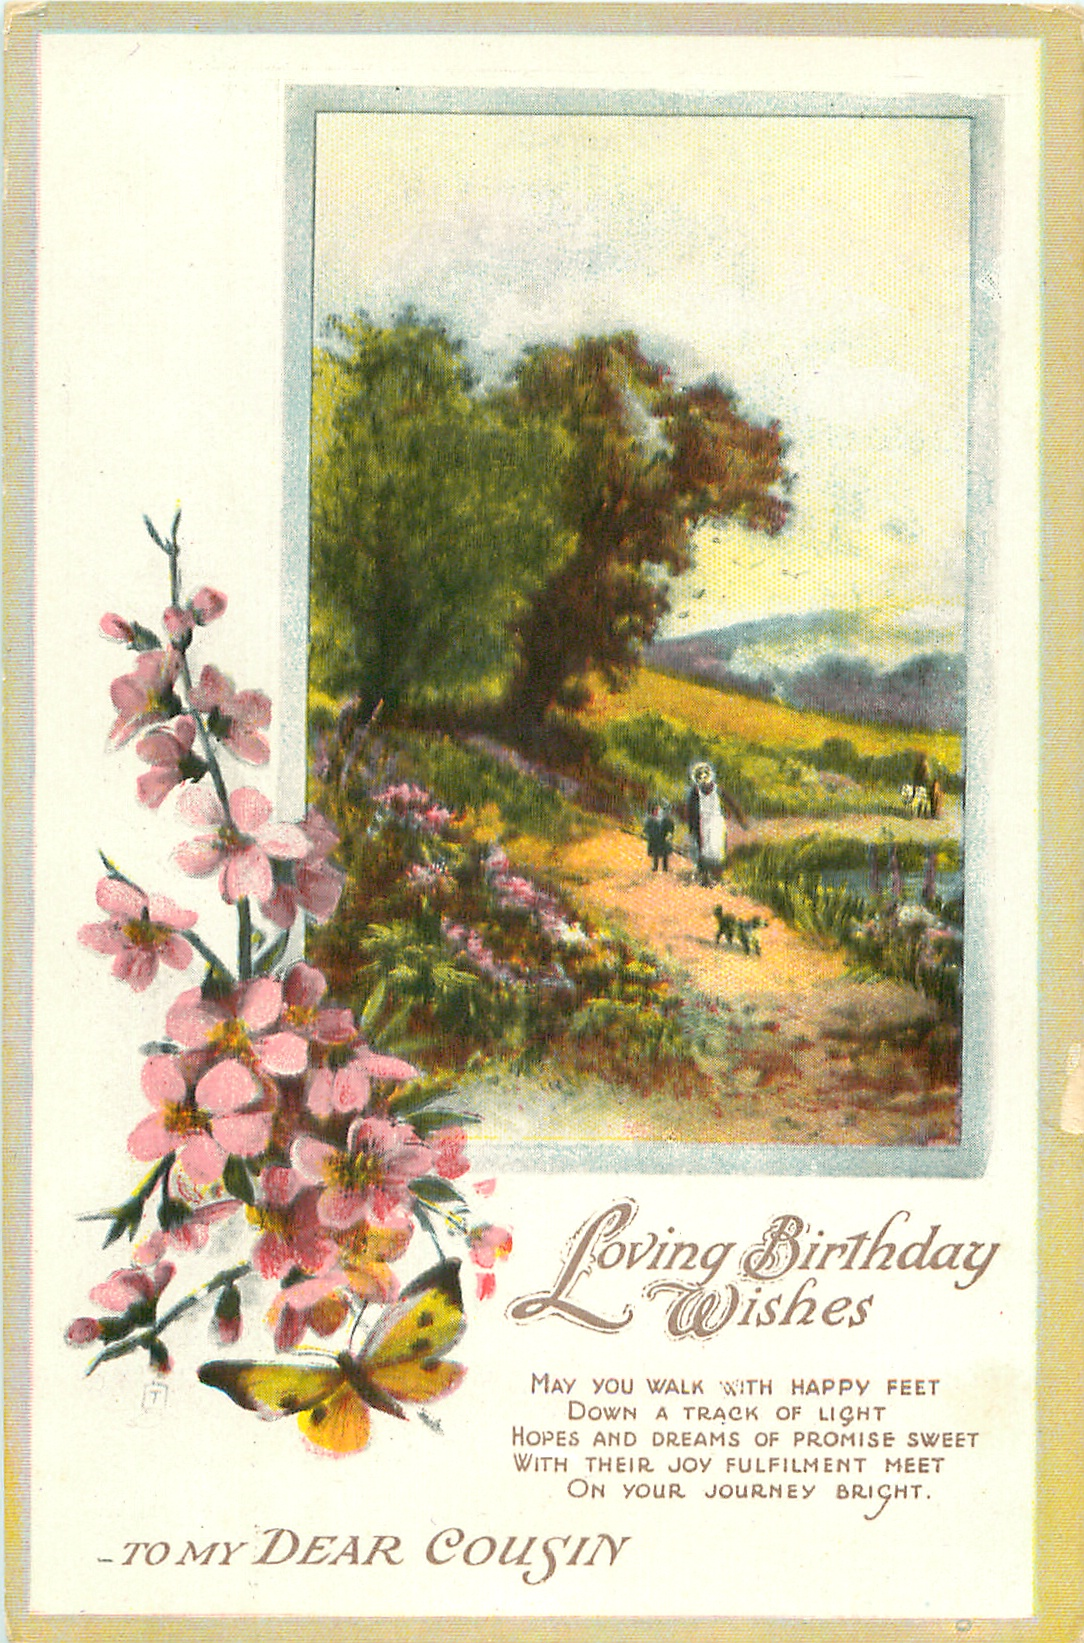 Loving Birthday Wishes To My Dear Cousin Rural Scene